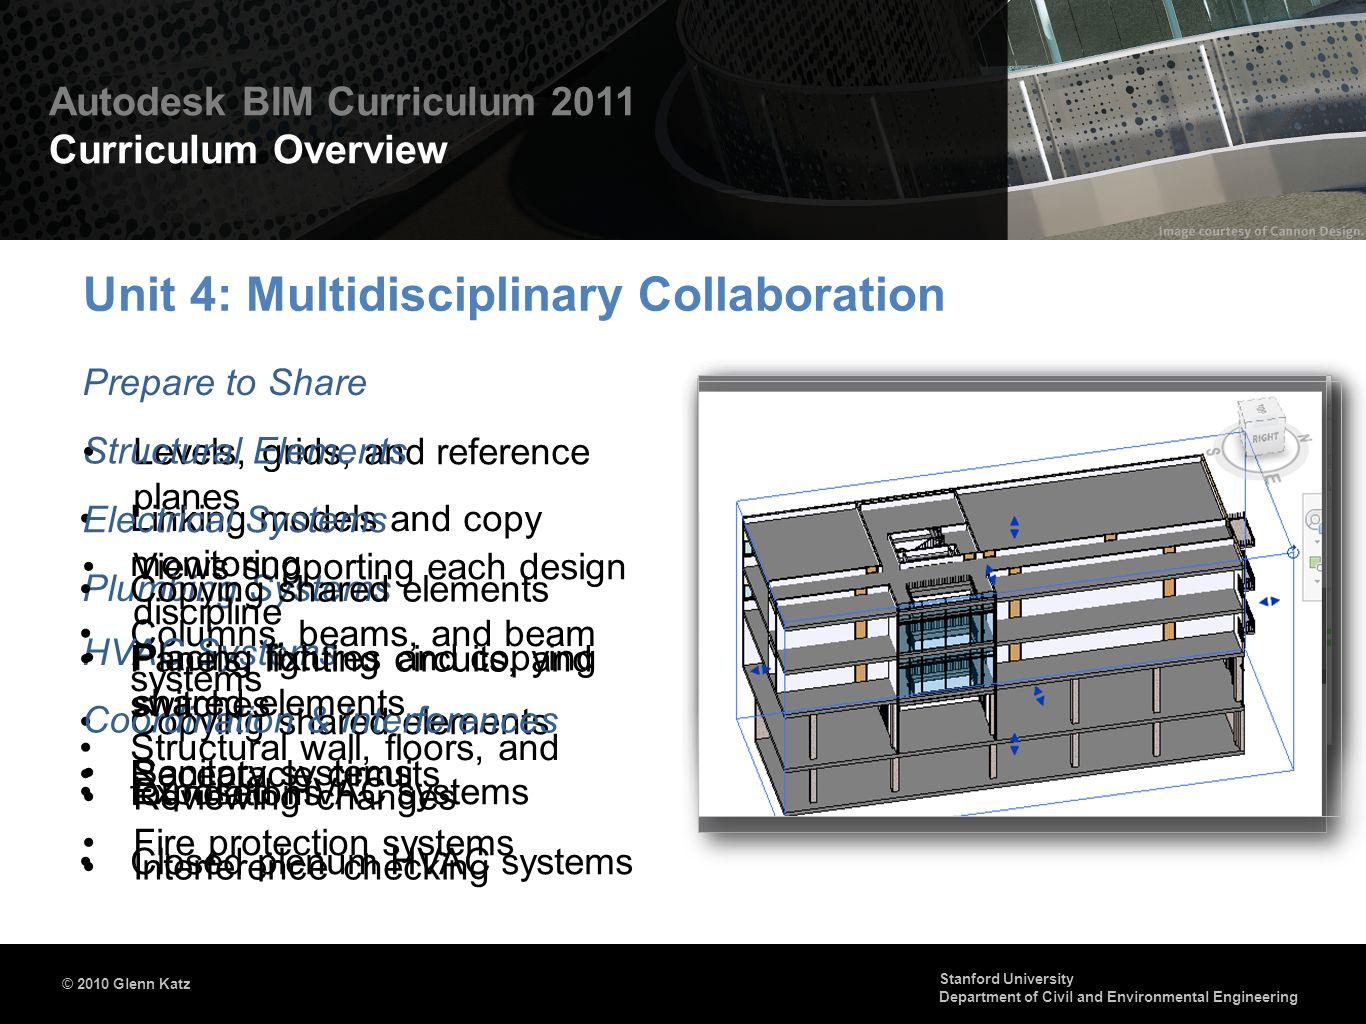 © 2010 Autodesk Autodesk BIM Curriculum 2011 Curriculum Overview © 2010 Glenn Katz Stanford University Department of Civil and Environmental Engineering Creating an integrated model Exploring the composite model Review and markup Conflict detection Digital RFIs Presenting the Project Model Scheduling & 4D Simulation Identifying & Resolving Issues Timelines and construction simulations Time-based clashes Enhancing model images with filtering and rendering Creating animations Unit 5: Using BIM in Integrated Project Delivery Model Integration & Management